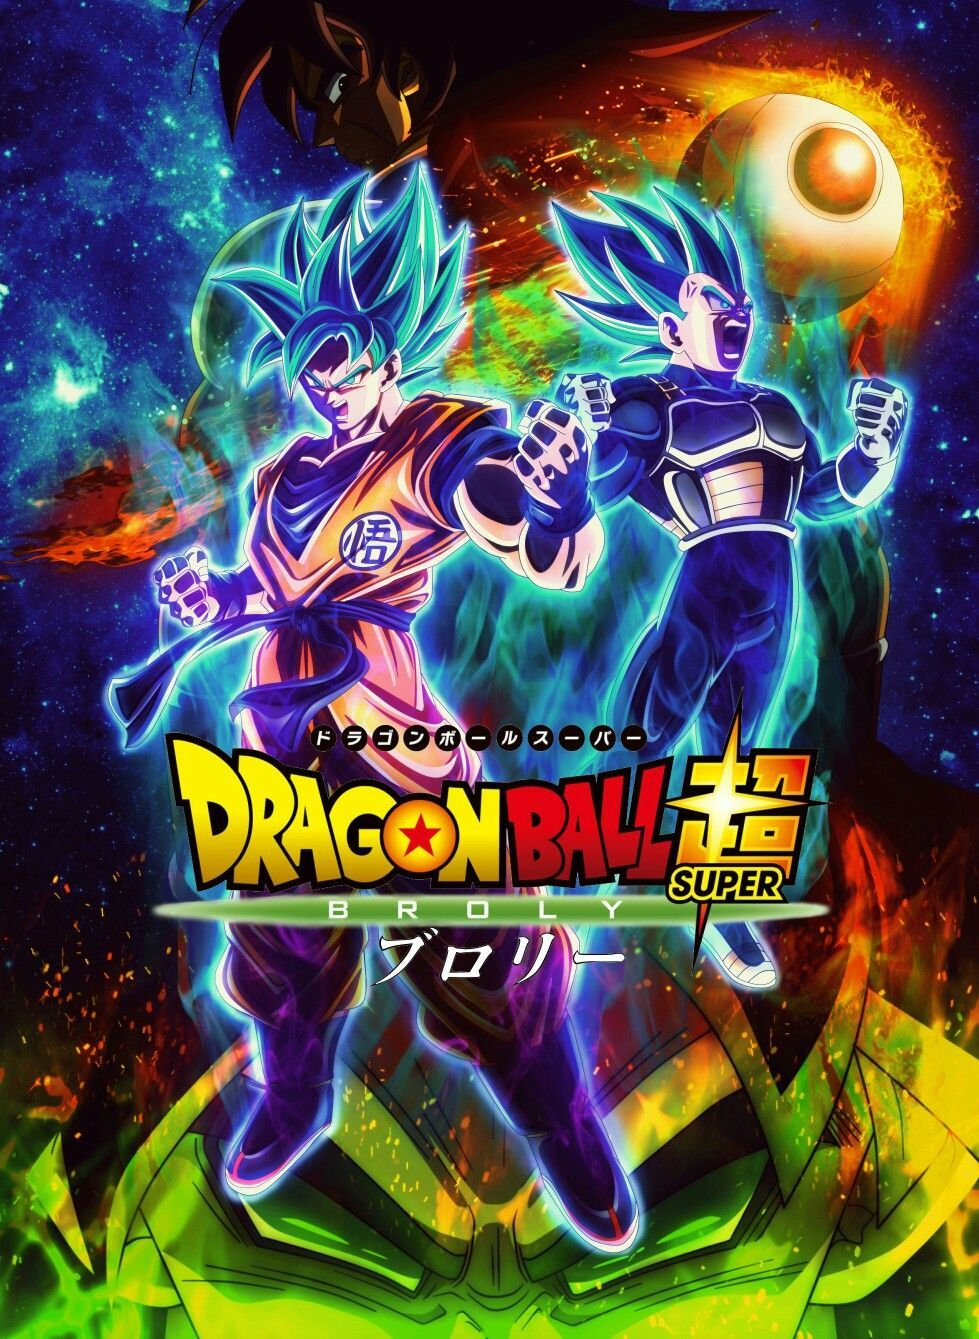 Dragon Ball Super Broly Wallpapers Top Free Dragon Ball Super